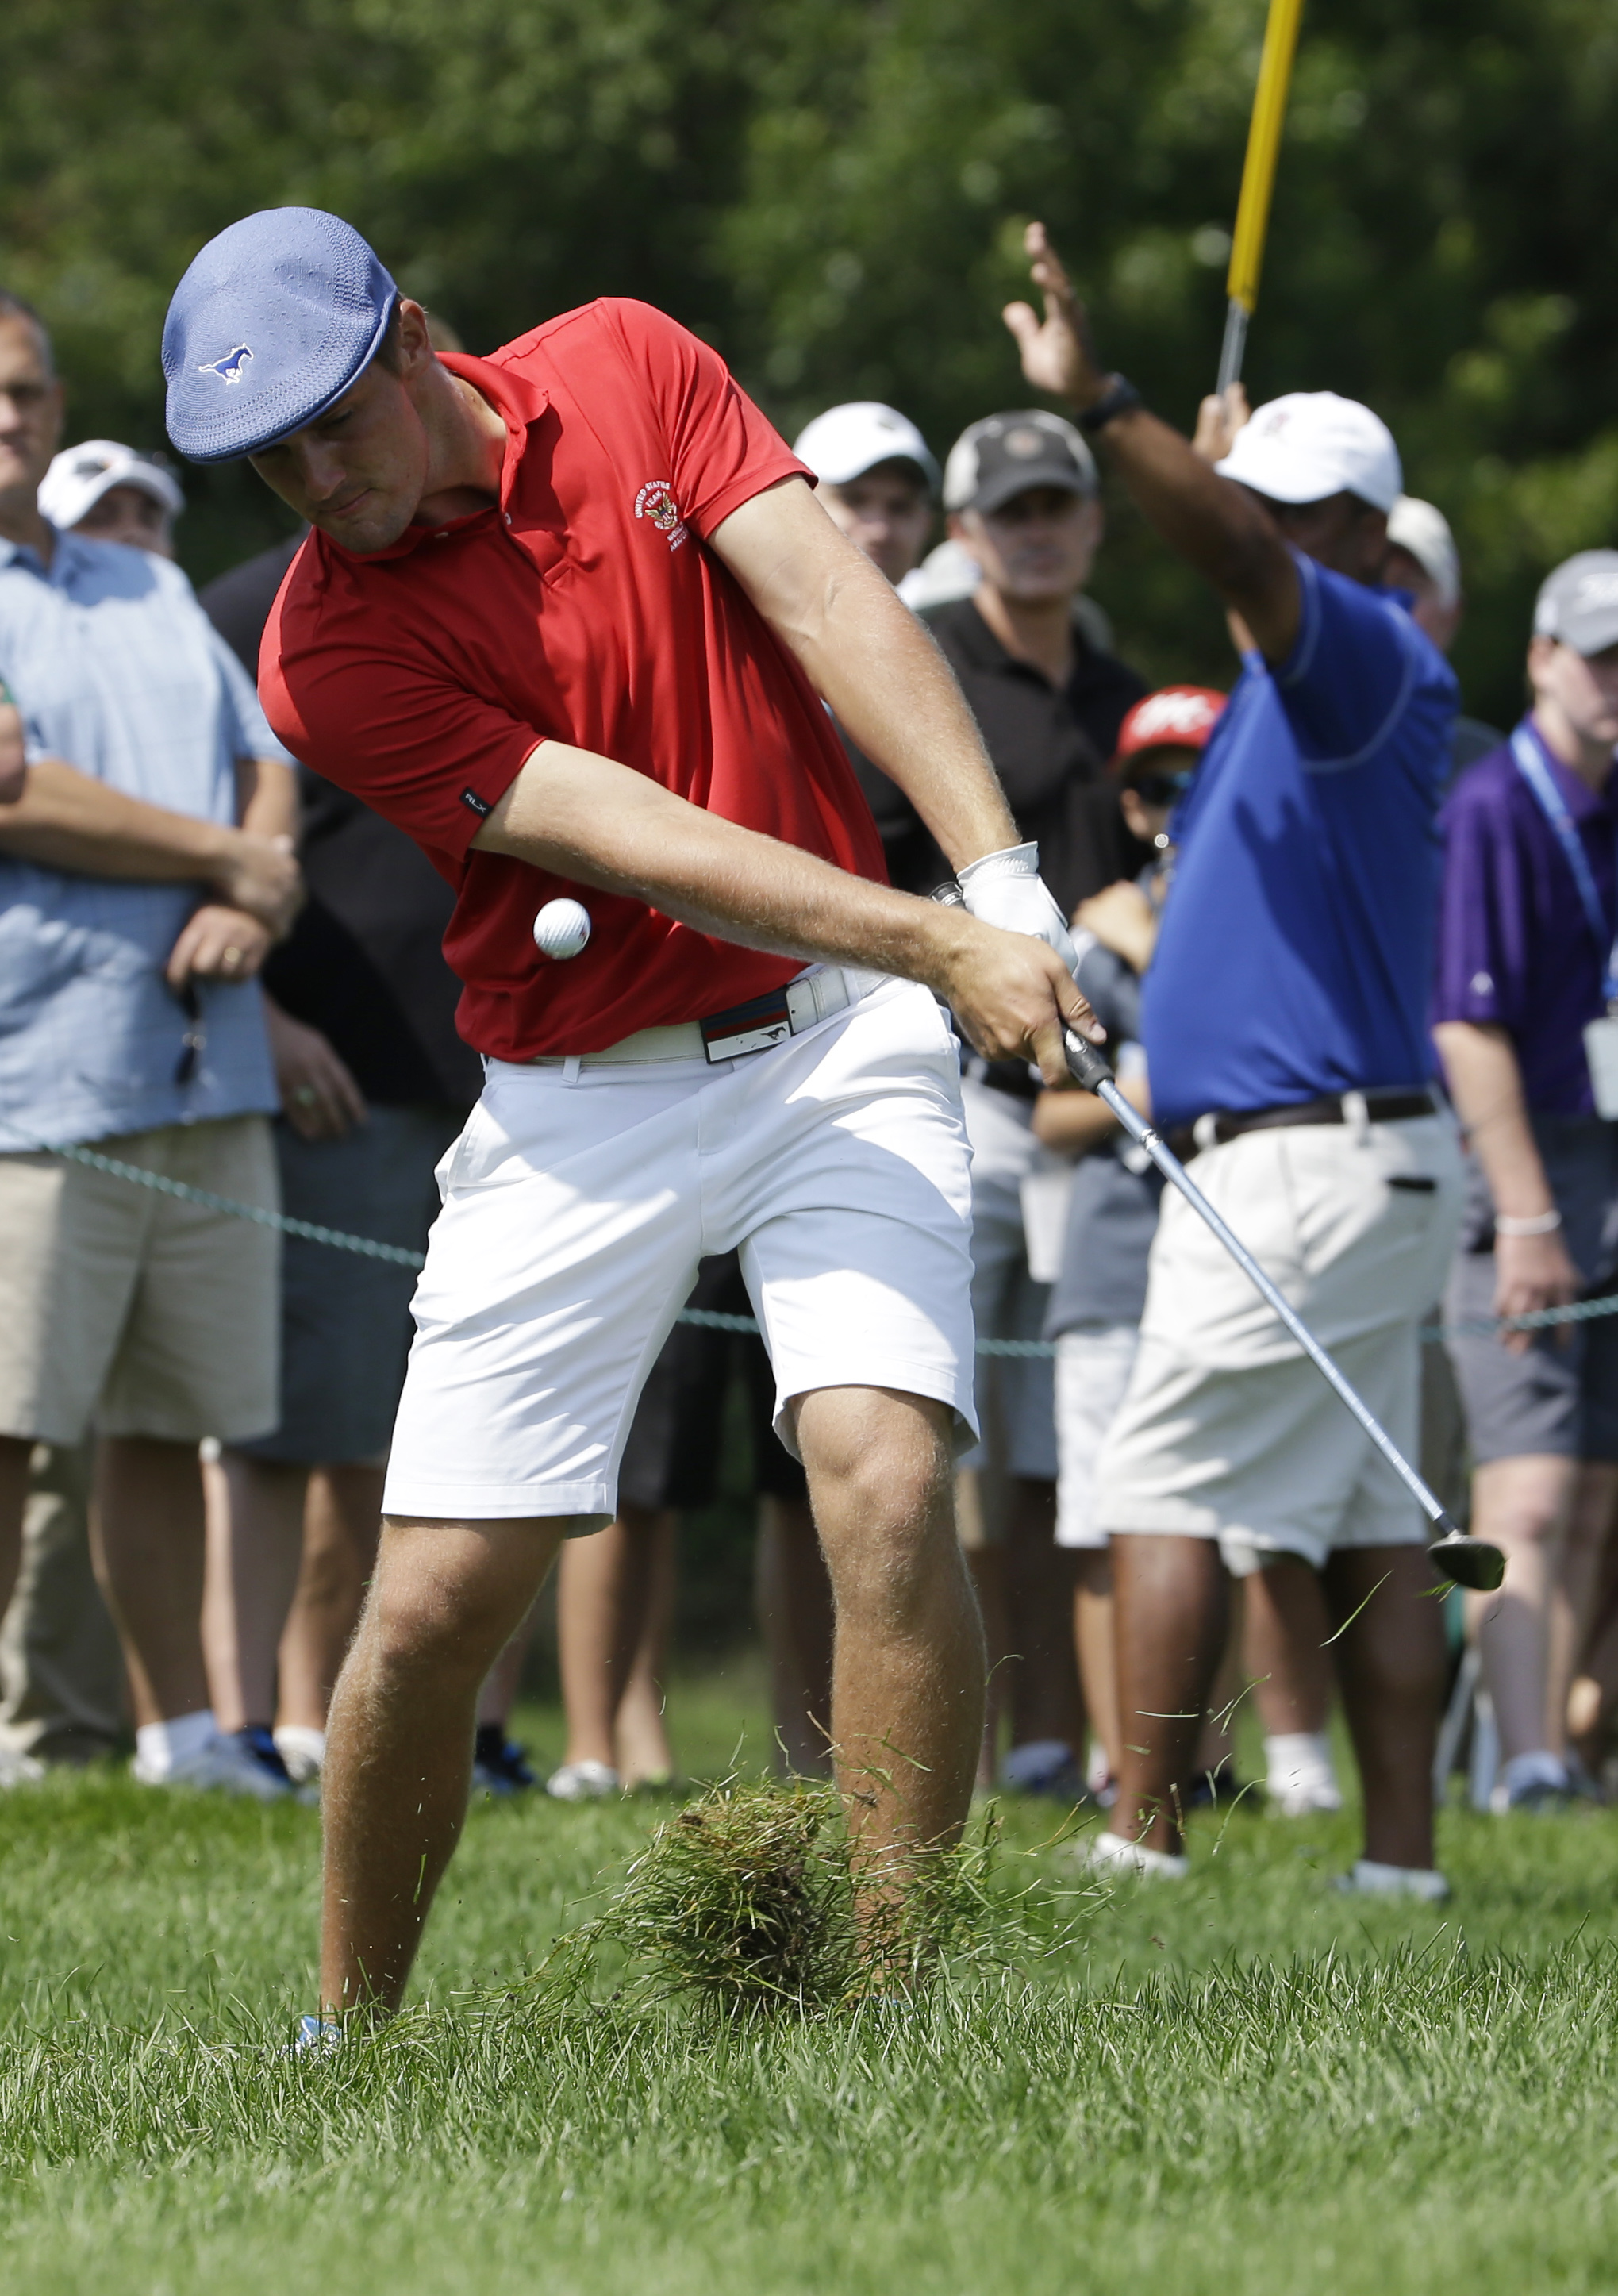 Bryson DeChambeau hits to the 18th green during the final round of the U.S. Amateur golf tournament at Olympia Filelds Country Club on Sunday, Aug. 23, 2015, in Olympia Fields, Ill. (AP Photo/Nam Y. Huh)